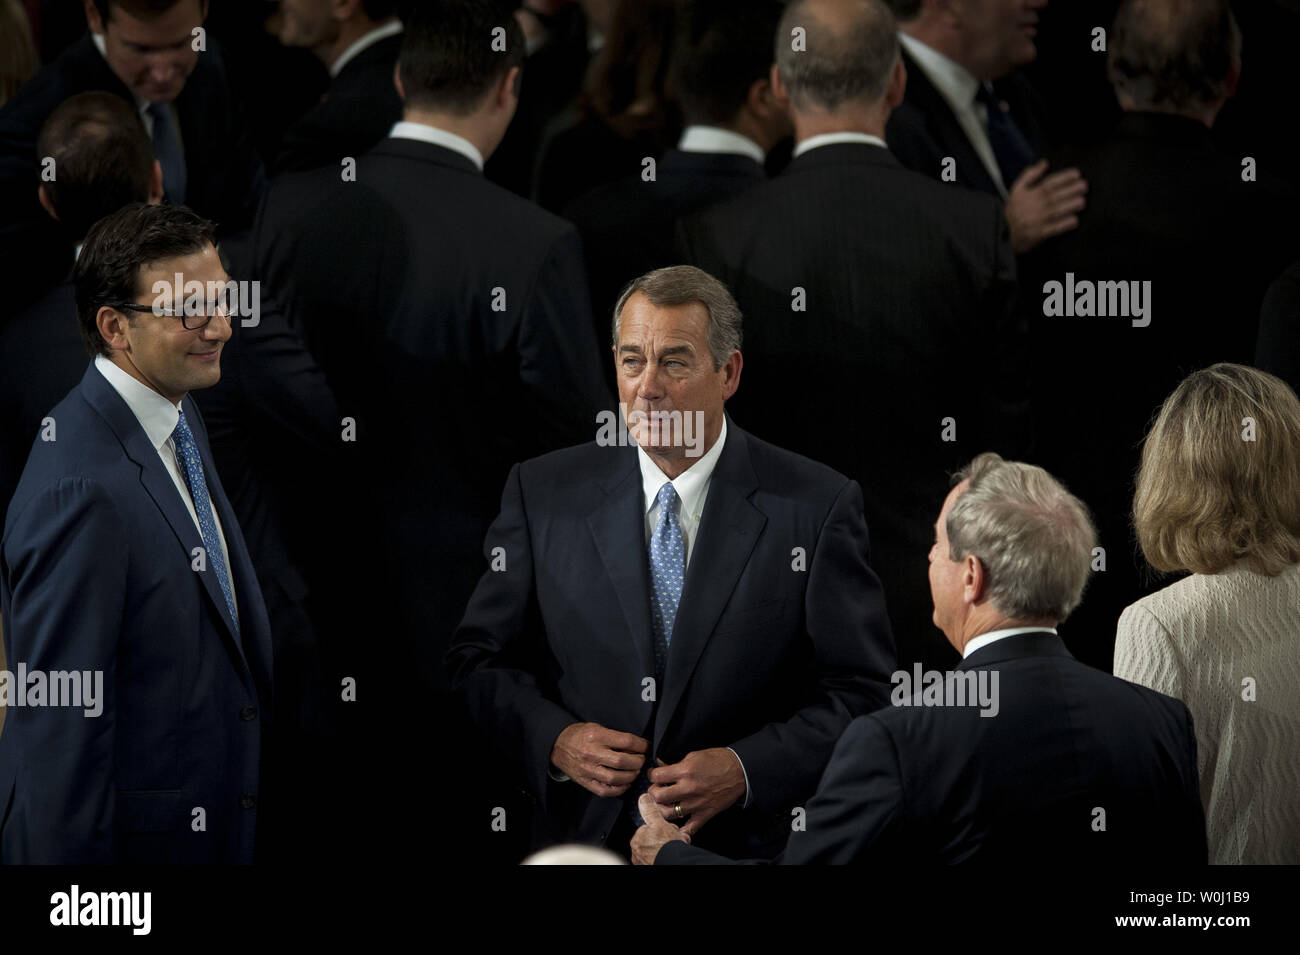 The day before he is to retire from Congress, Speaker of the House John Boehner (R-OH) prepares to deliver his farewell address to the House of Representatives on October 29, 2015 in Washington, D.C. Following his address, the House of Representatives will vote on Boehner's replacement for Speaker. Photo by Pete Marovich/UPI - Stock Image